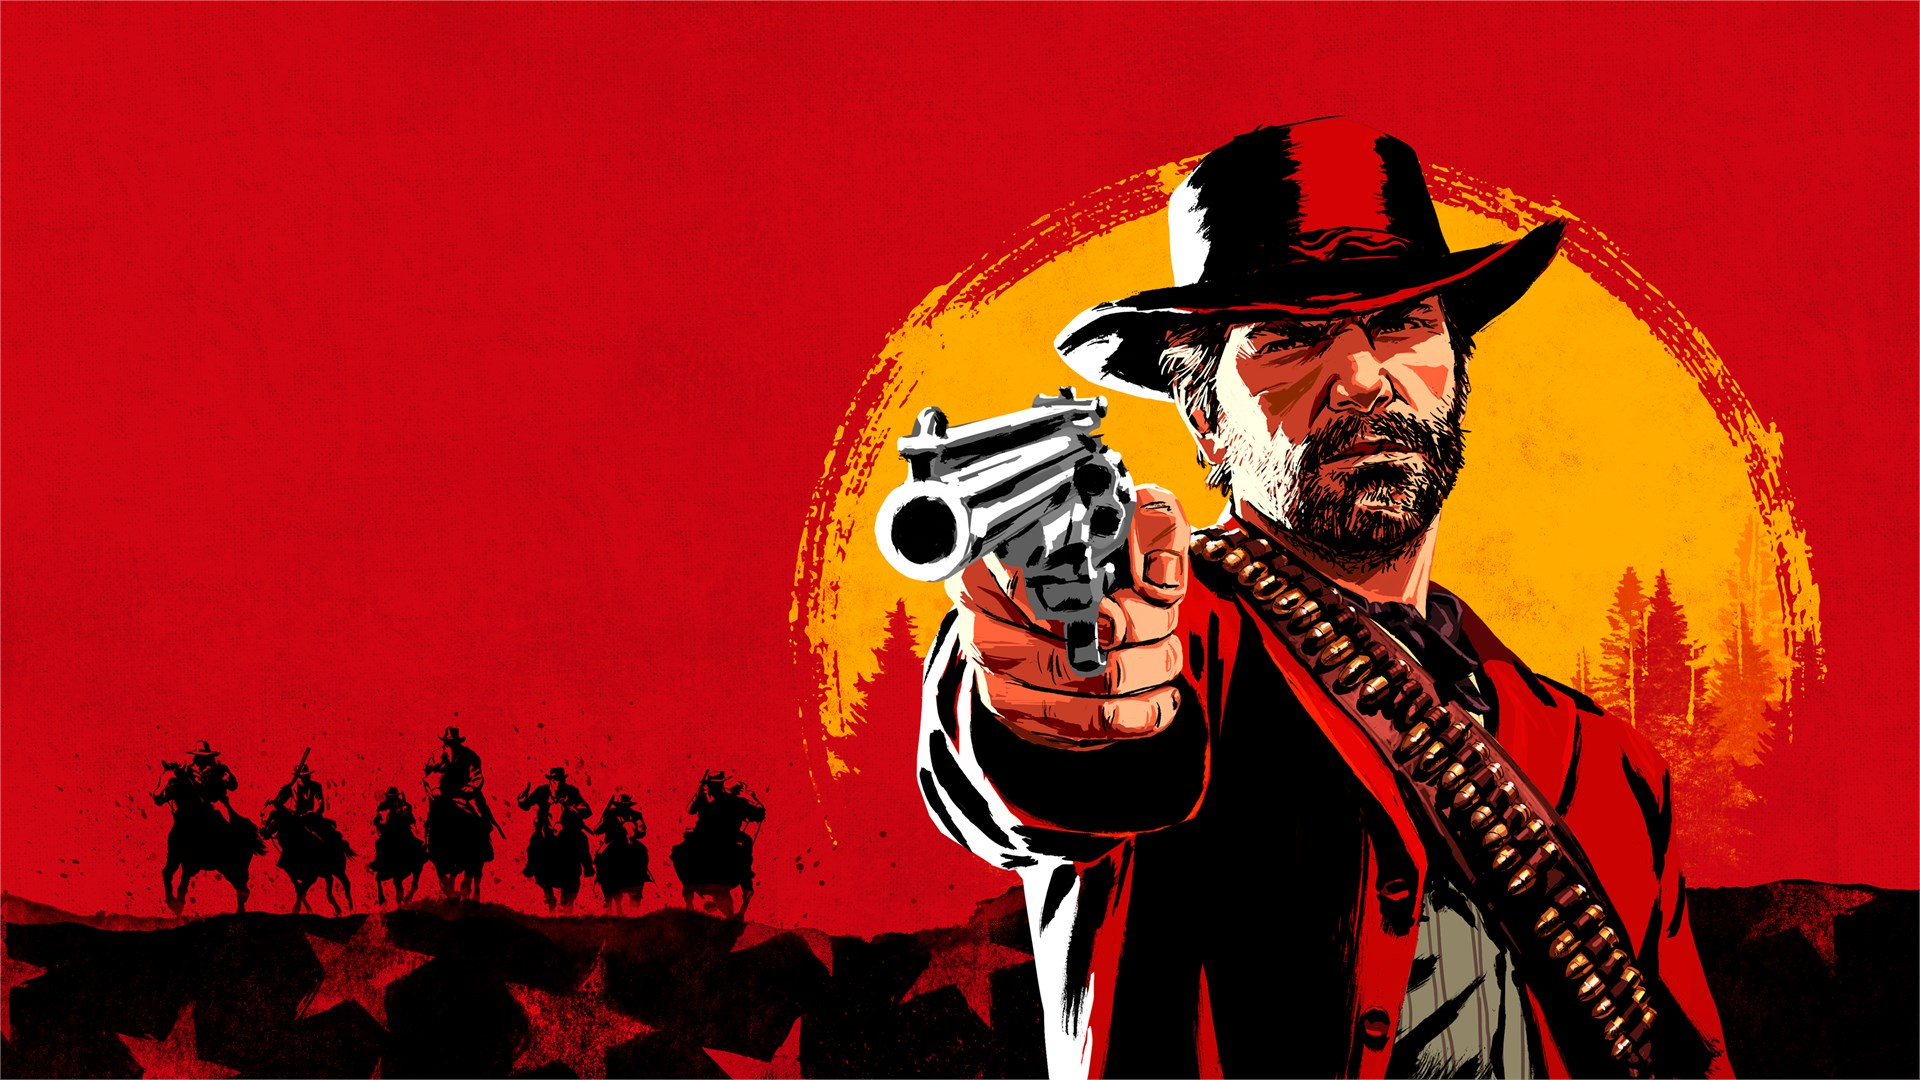 Red Dead Redemption 2: Story Mode and Ultimate Edition Content